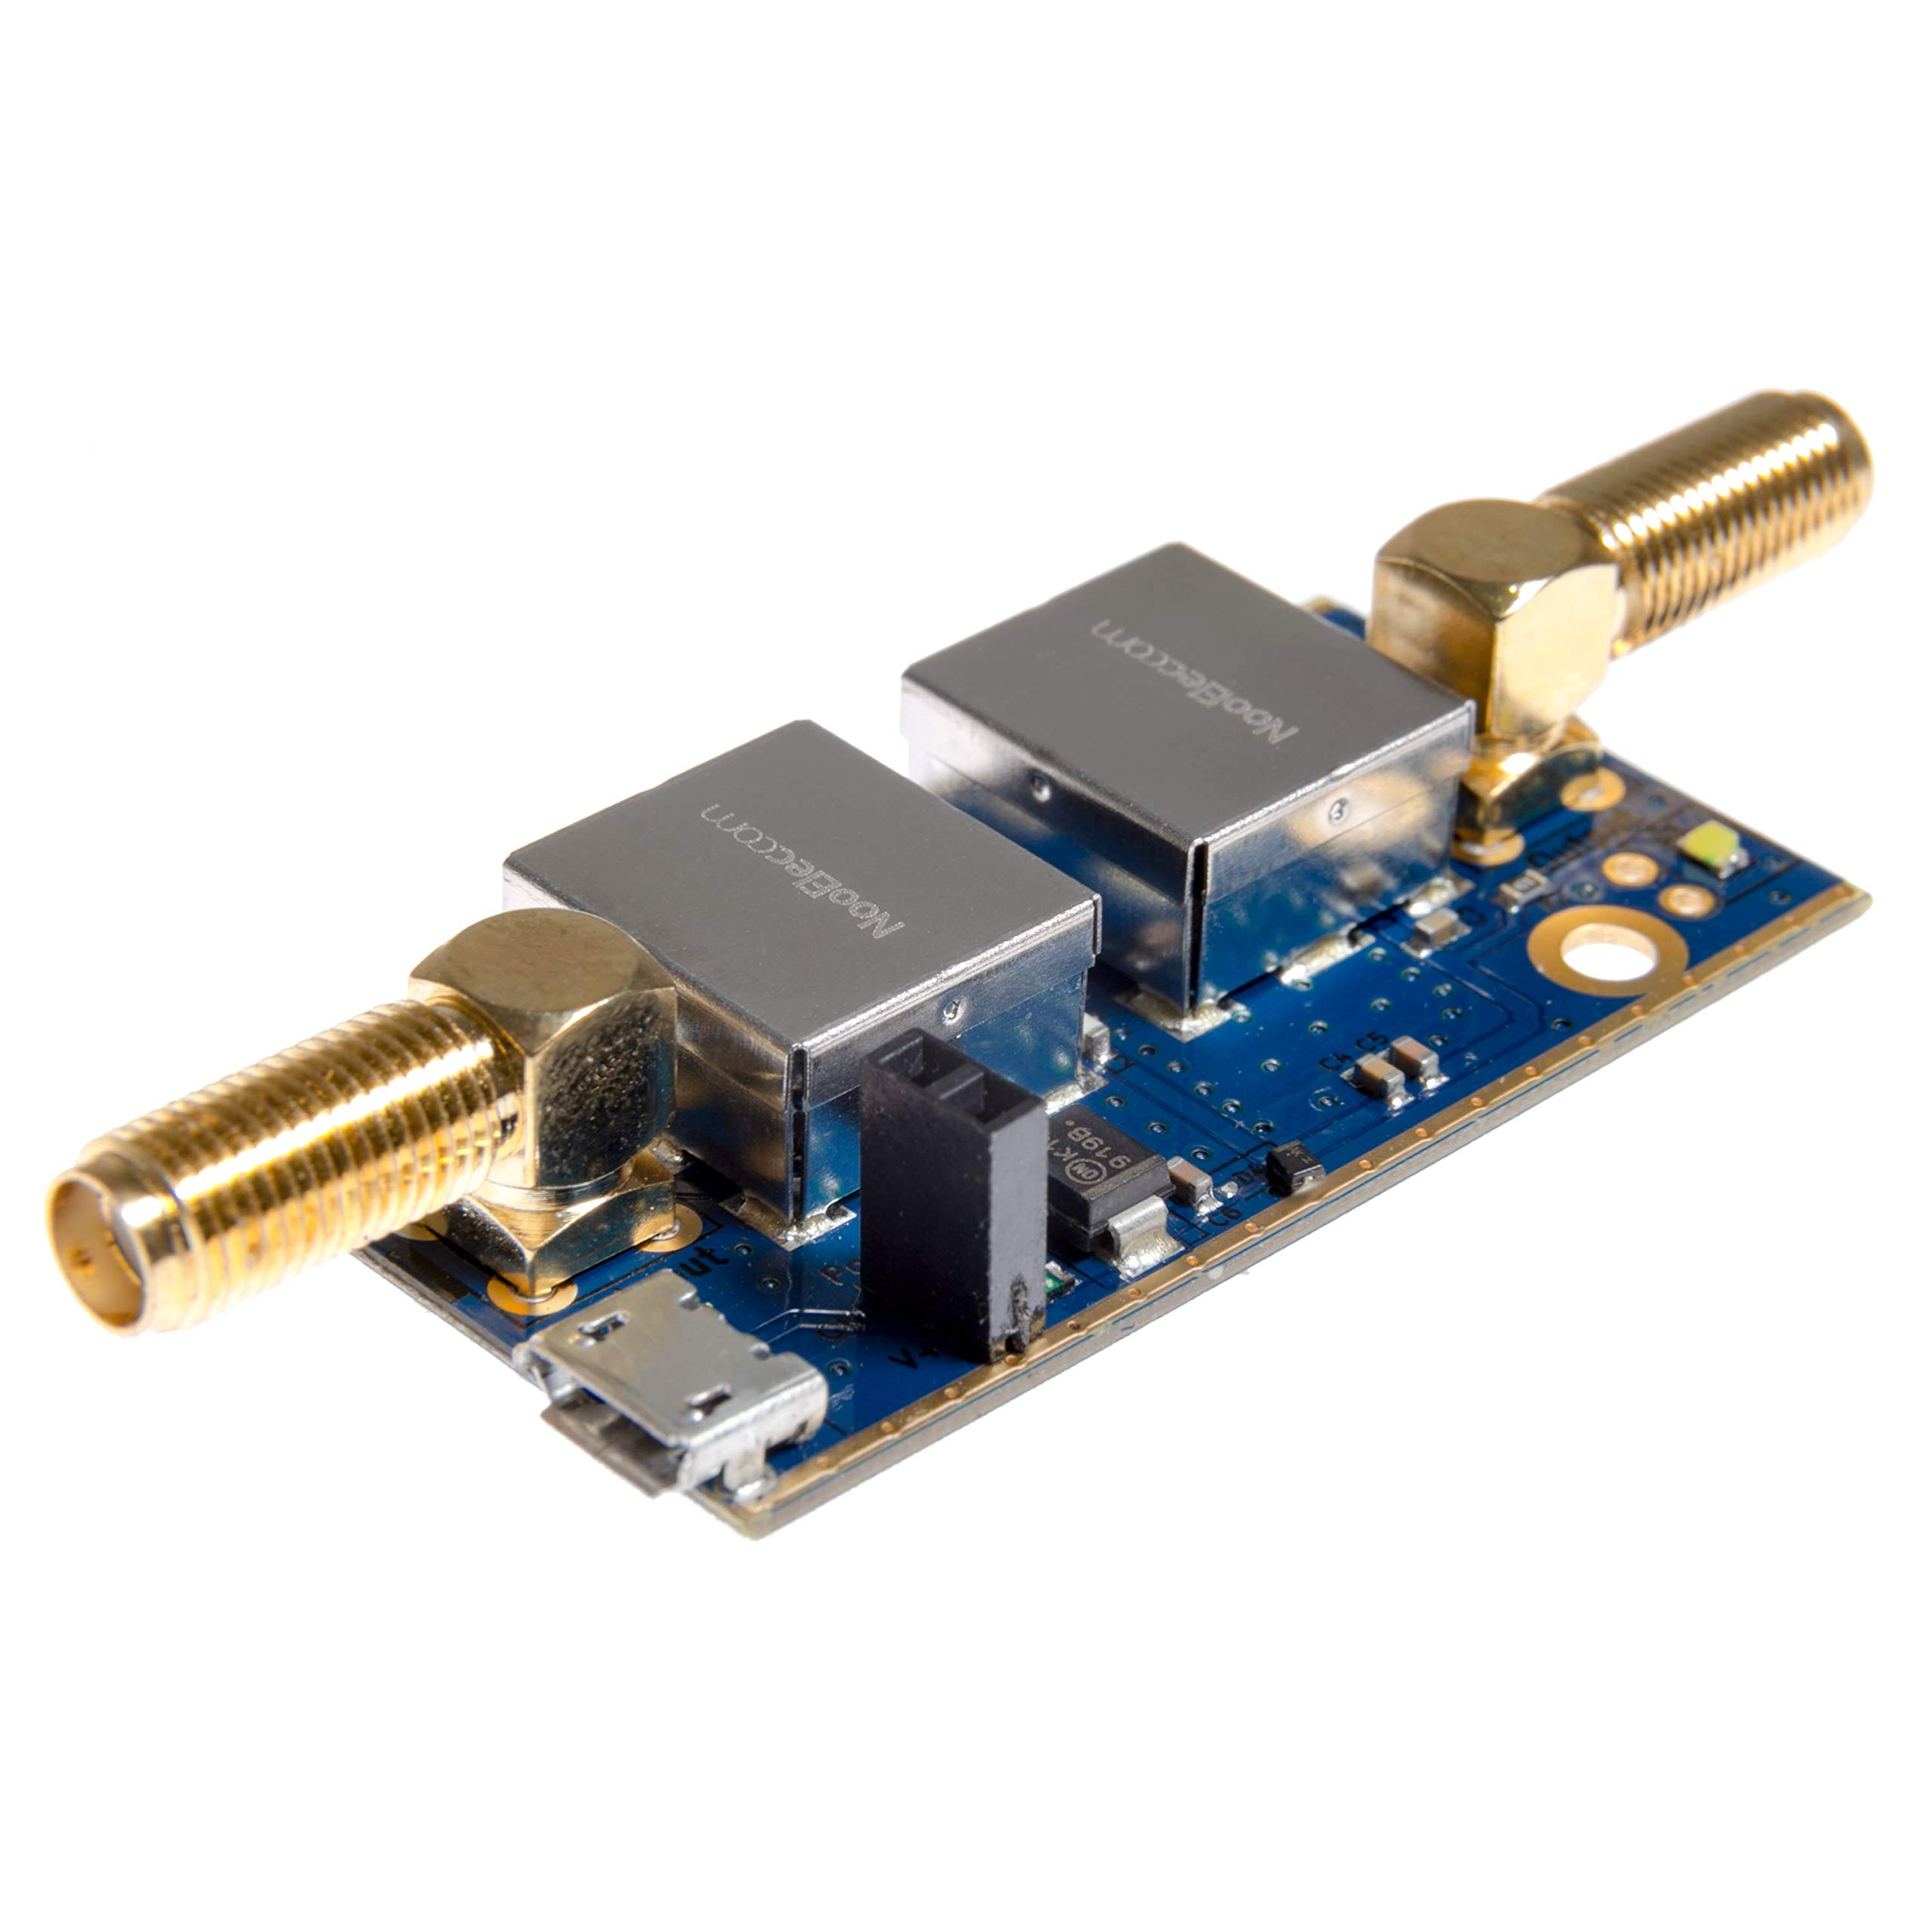 Nooelec SAWbird+ iO Barebones - Premium Saw & Cascaded Ultra-Low Noise LNA Module for Inmarsat Applications. 1542MHz Center Frequency.